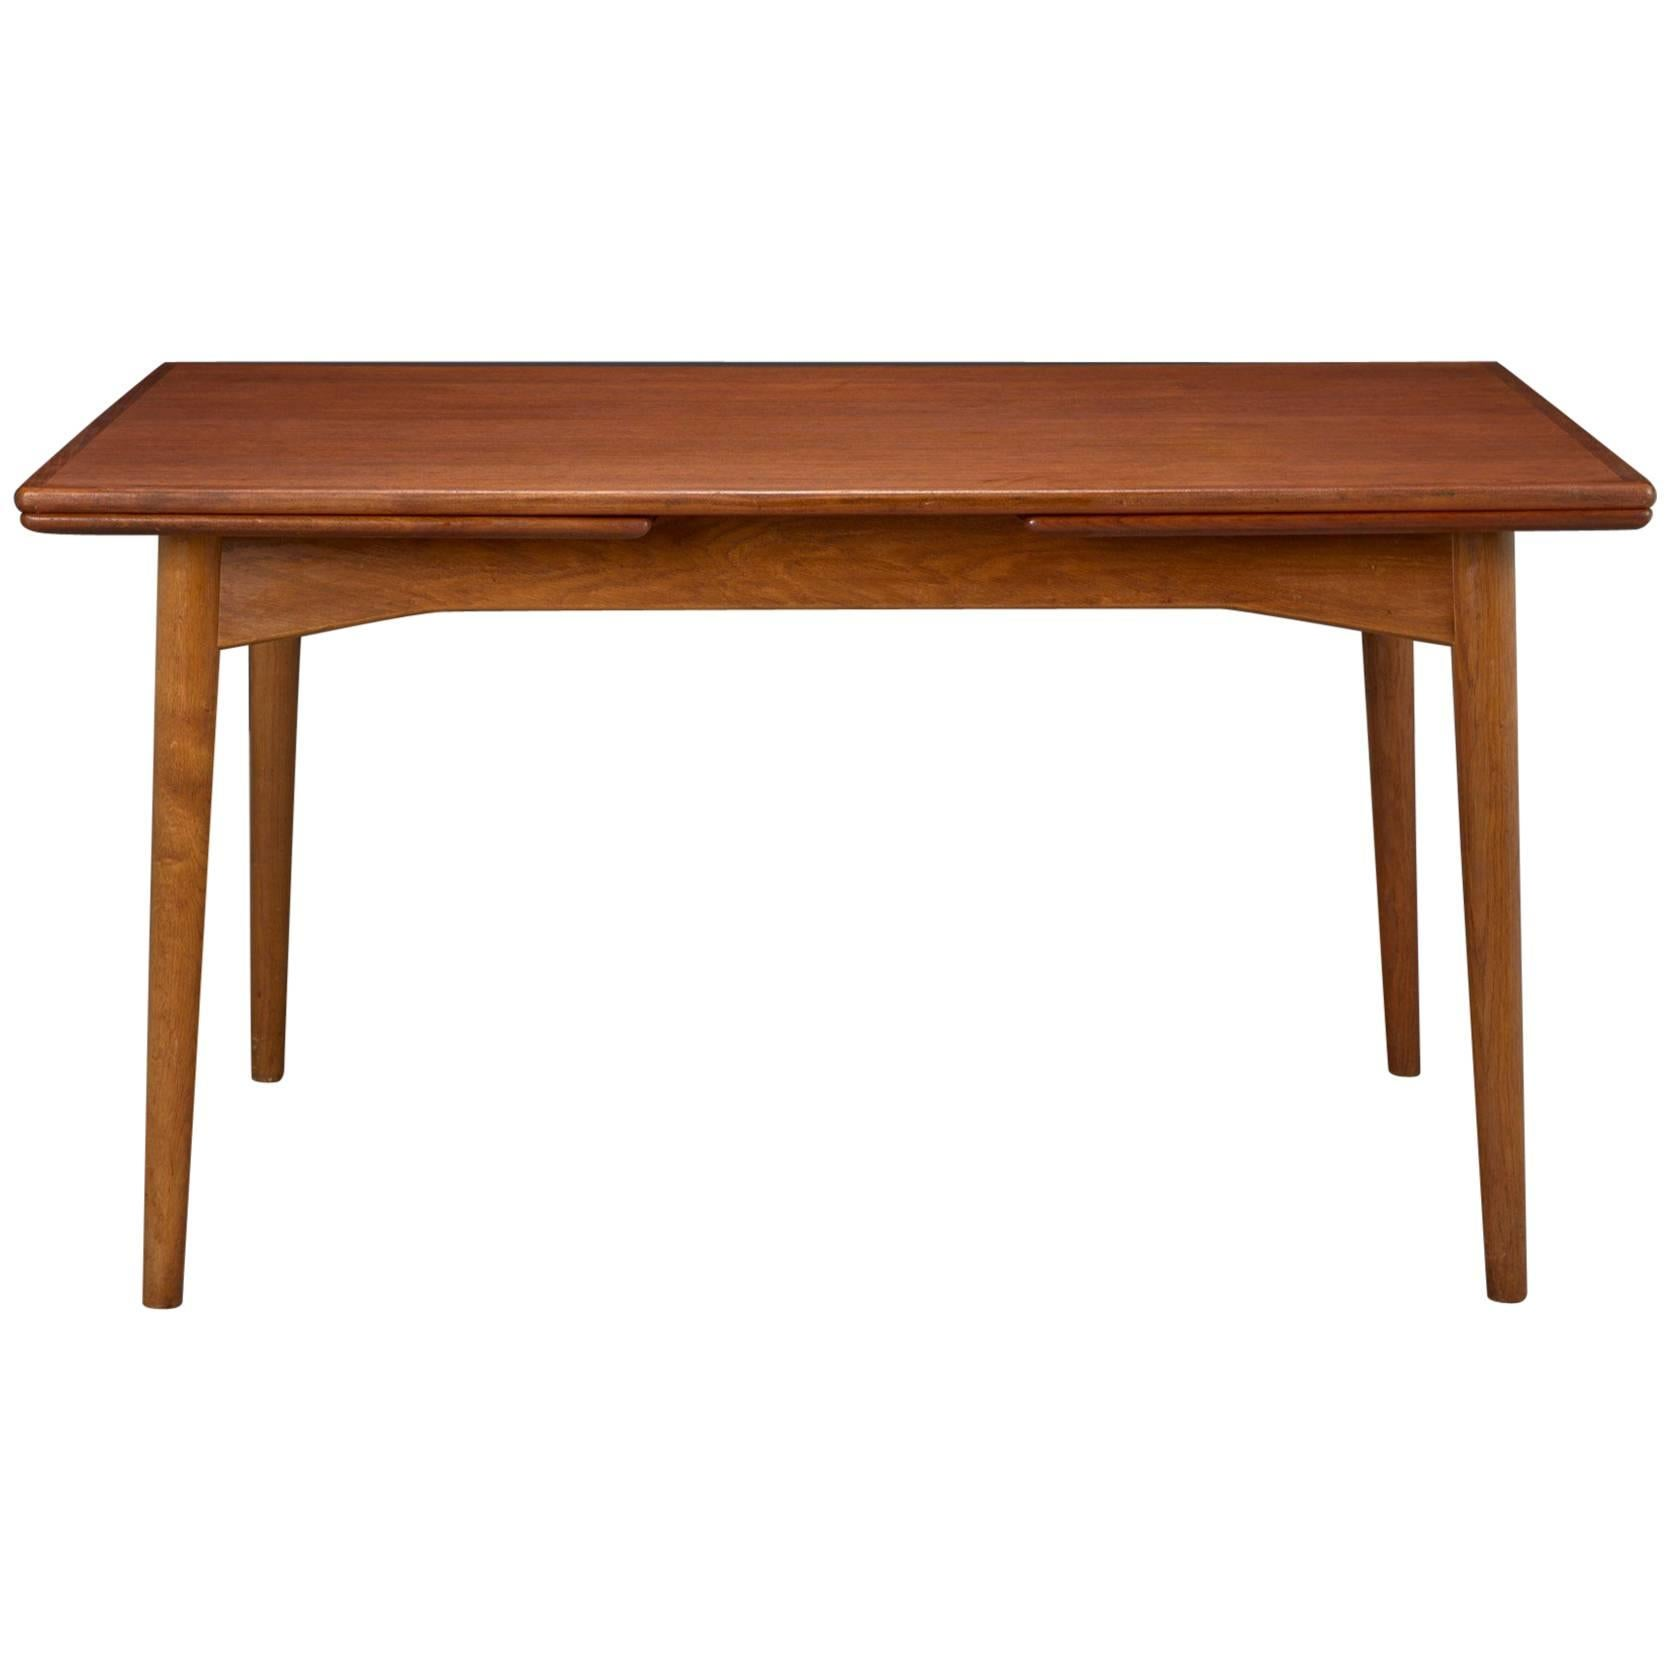 Danish Modern Teak Dining Table With Two Pull Out Leaves By Omann Jun For  Sale